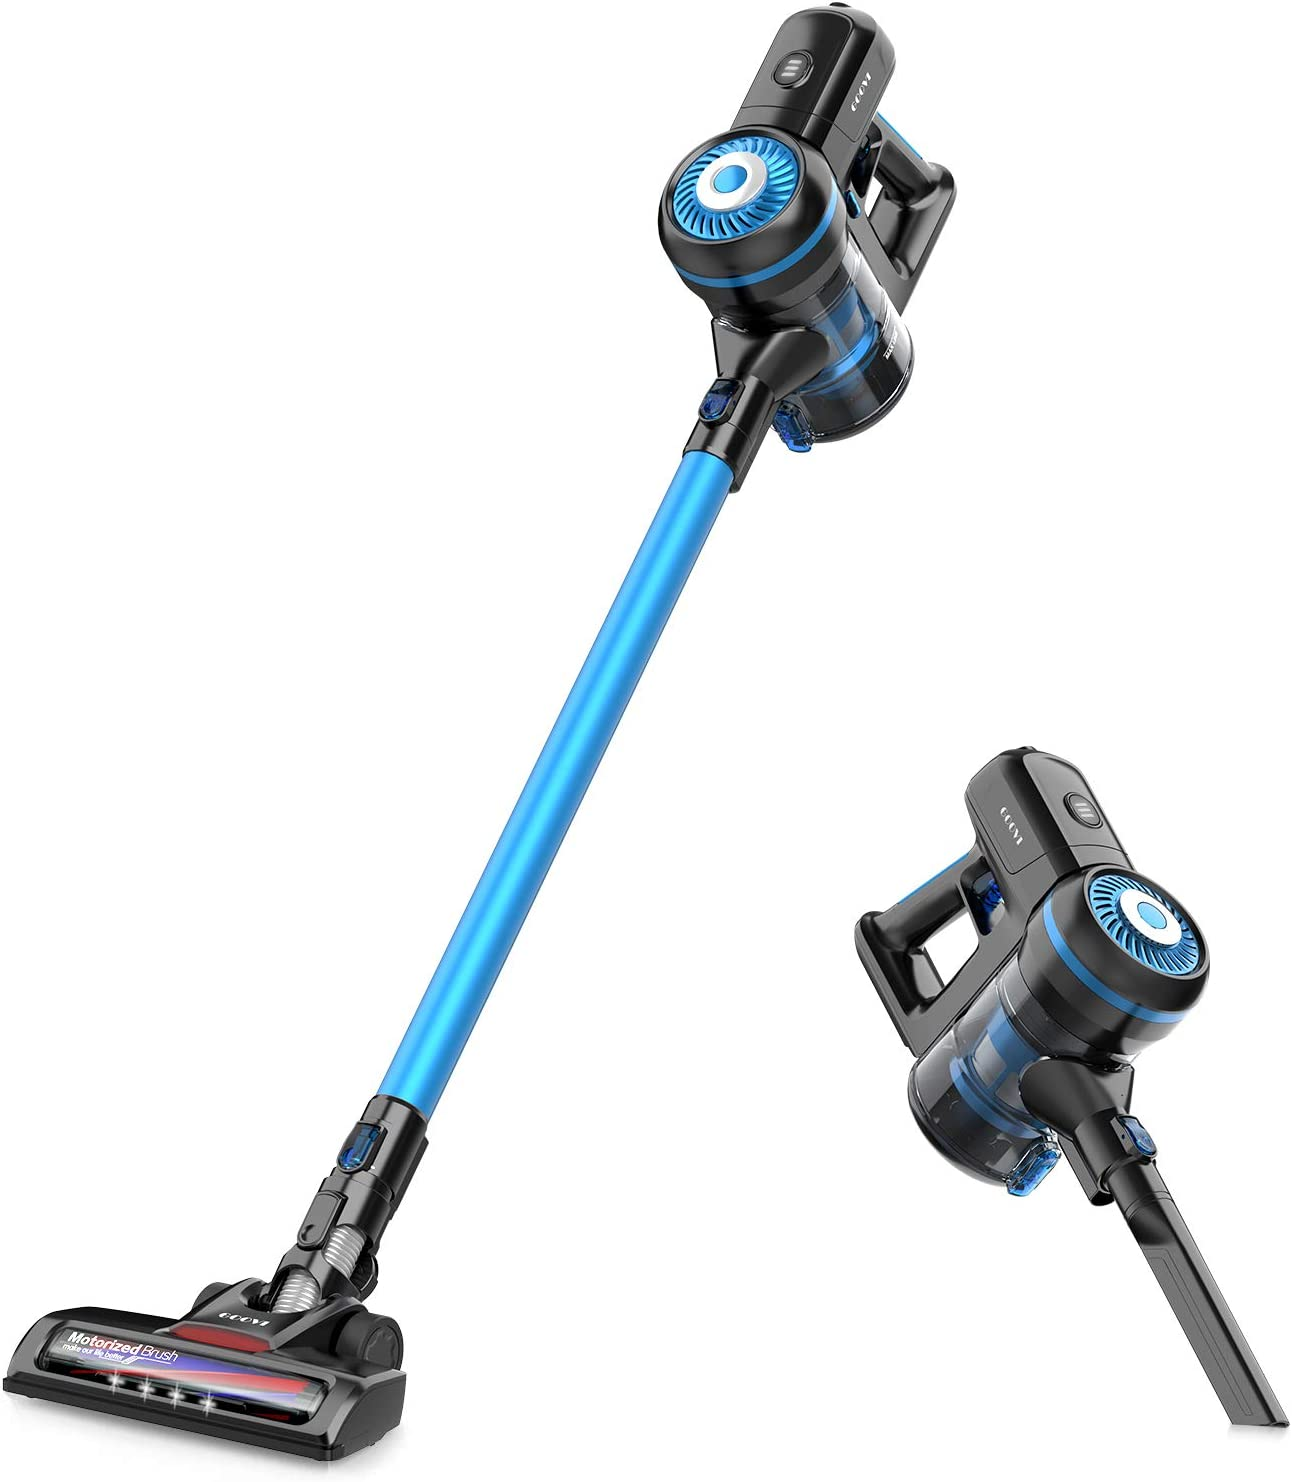 GOOVI Cordless Vacuum Cleaner 10KPa Powerful Suction 40min-Running 2 in 1 Handheld Vacuum Cleaner Lightweight & Filtration for Home Hardwood Floor Carpet Car Pet Cleaning